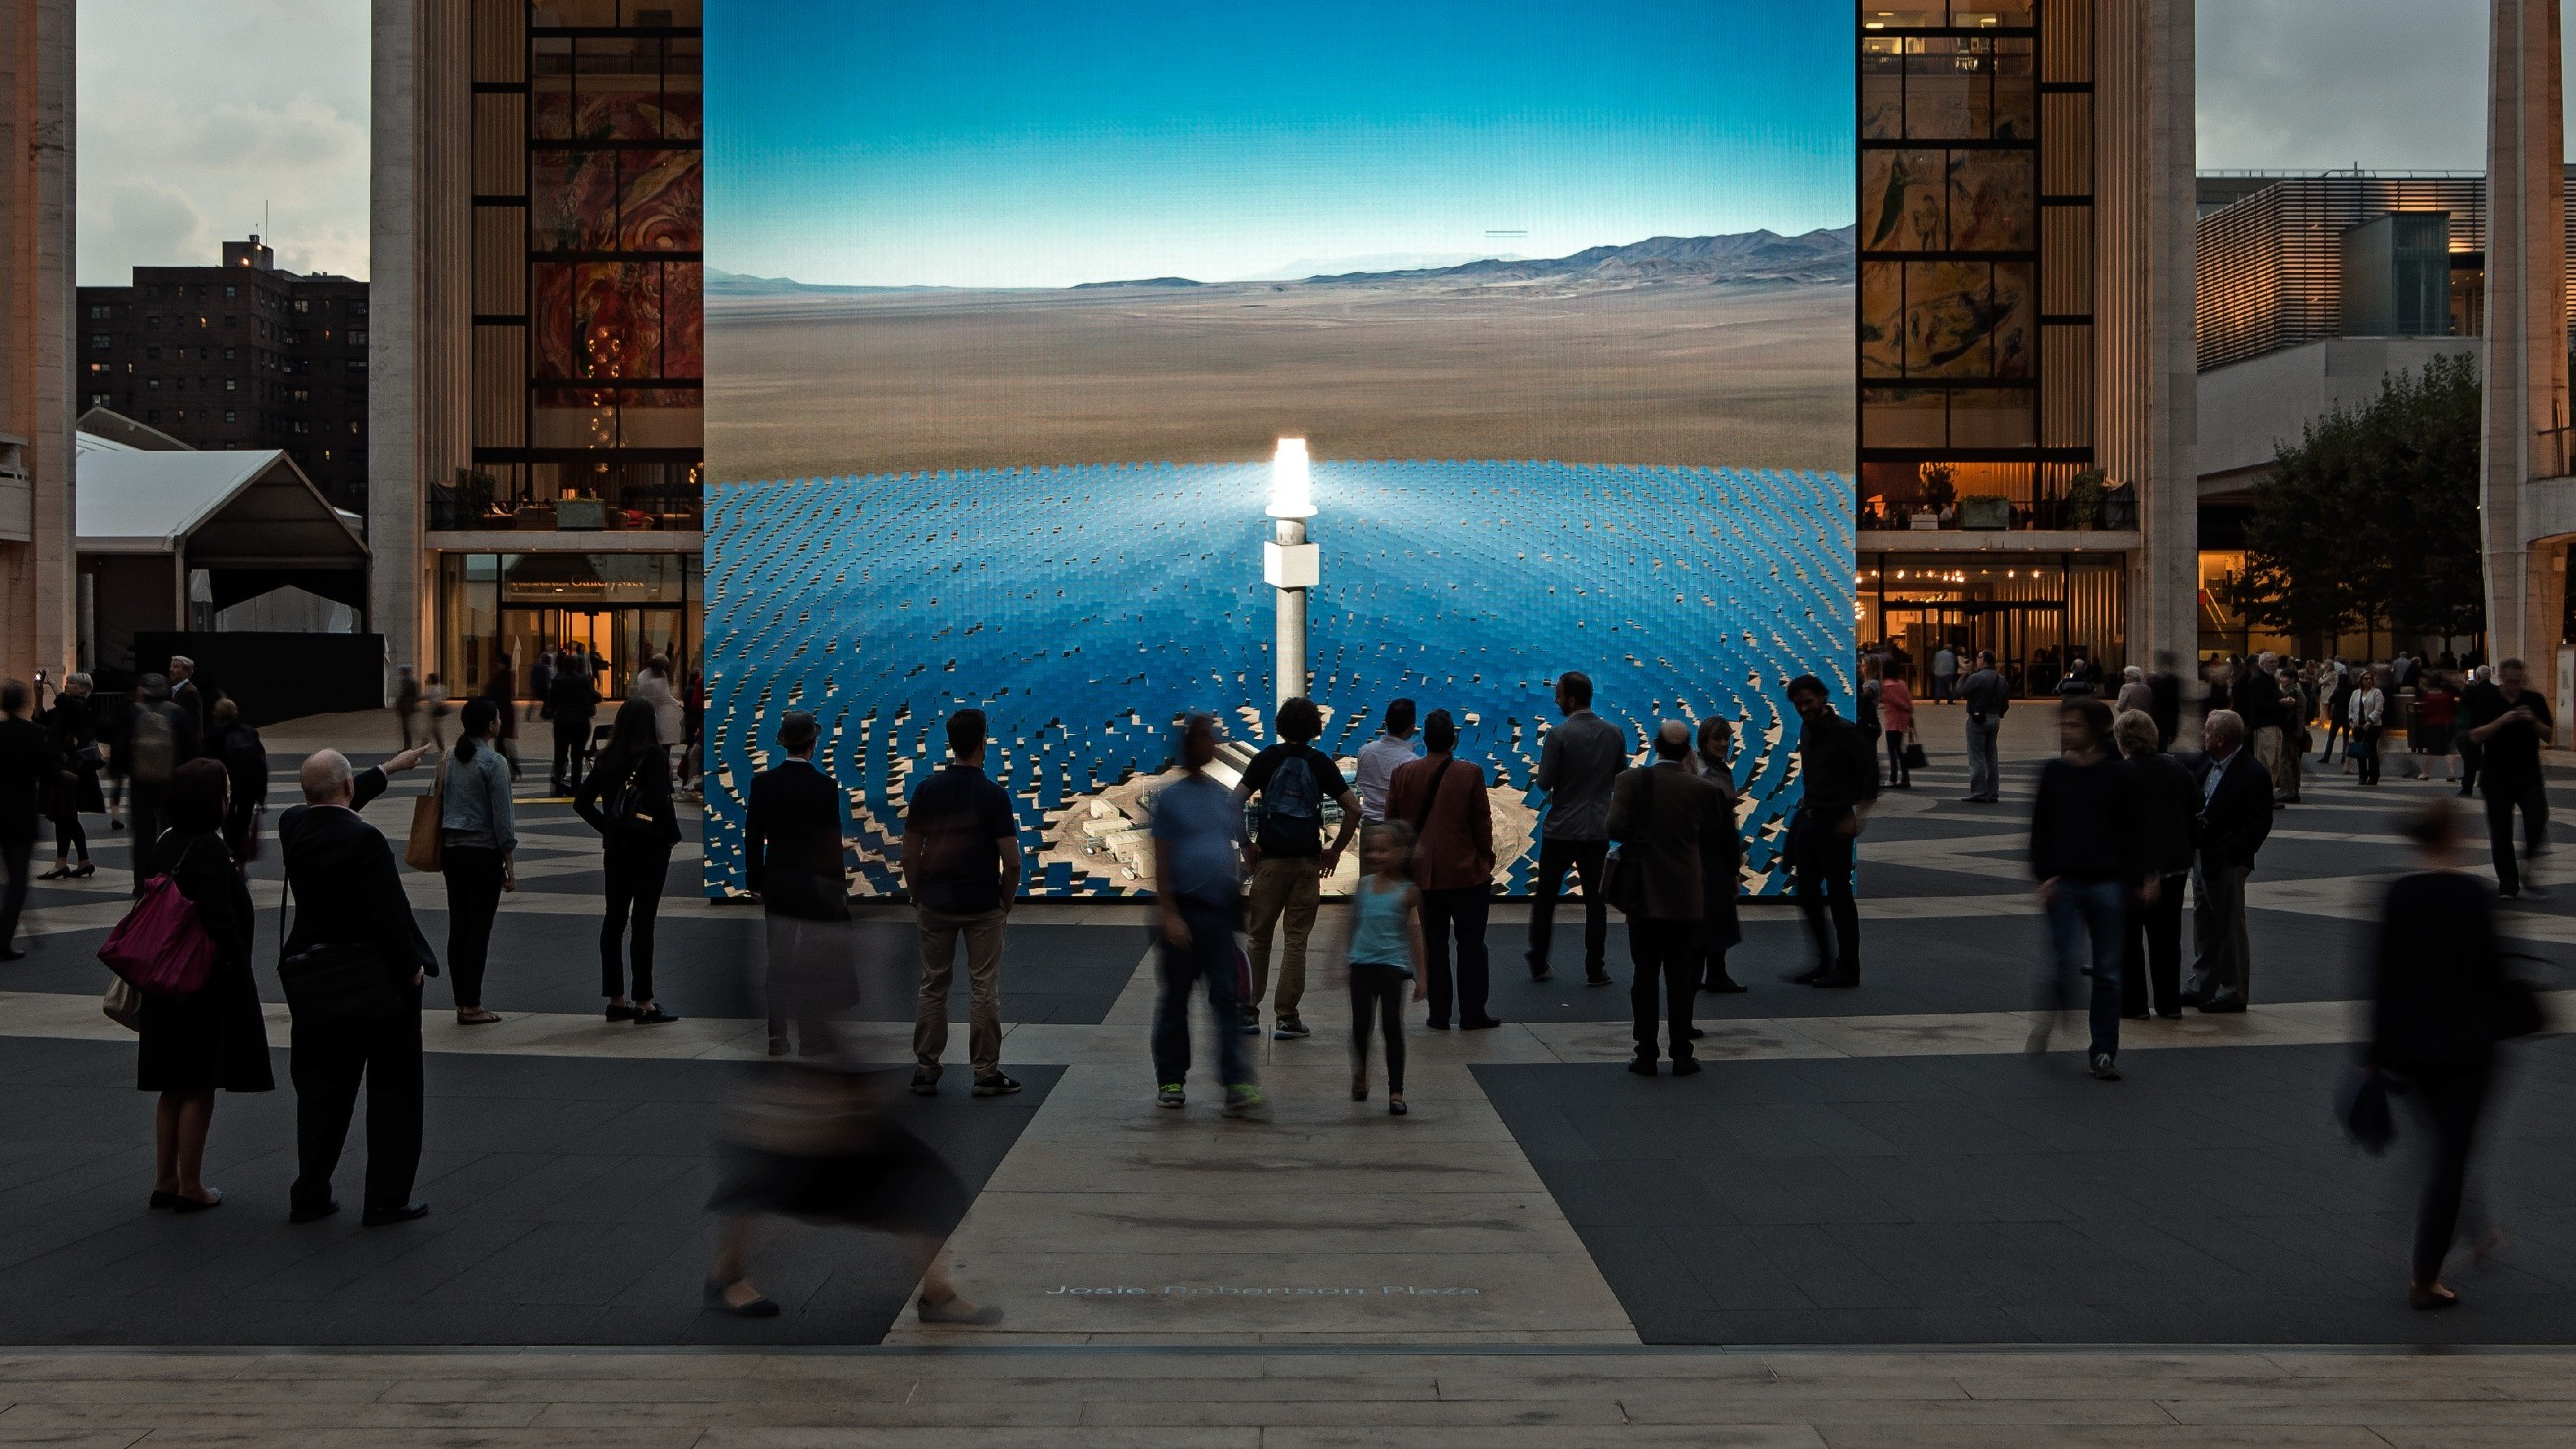 This Monolithic Installation Simulates a Solar Power Plant in Real Time